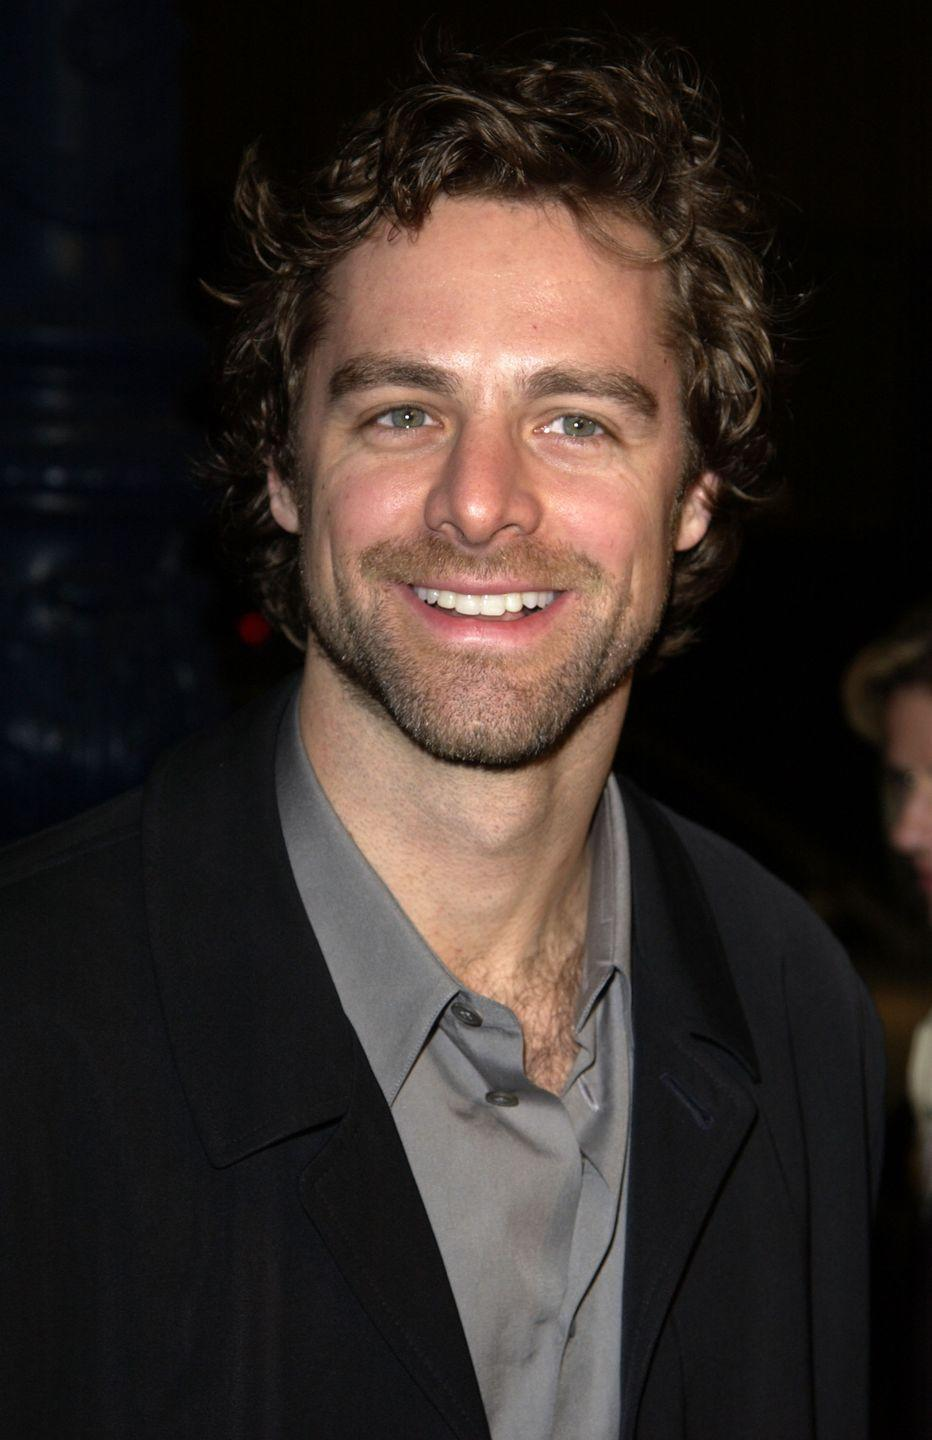 <p>The Canadian-born actor had smaller roles before joining <em>Gilmore Girls</em> at the end of season one as Rory's absentee father, Christopher Hayden. David became a reoccurring character throughout the series and the actor enjoyed success on the side with roles in films like <em>Under The Tuscan Sun</em>. </p>